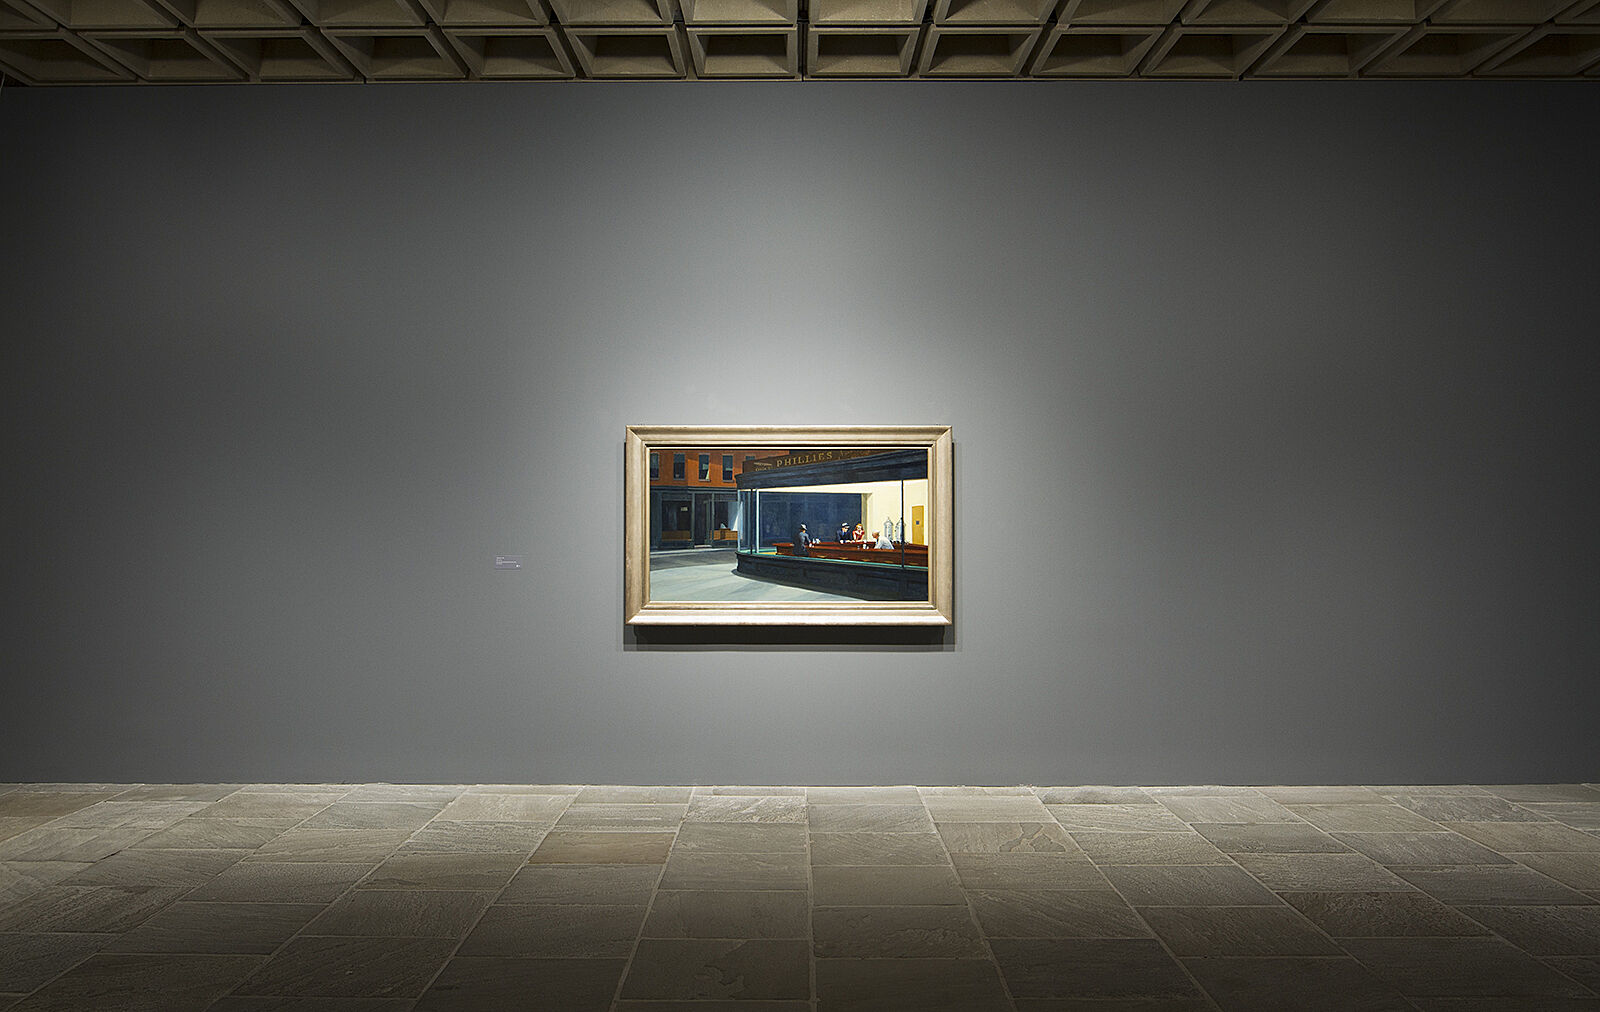 Nighthawks painting stands alone on a wall.